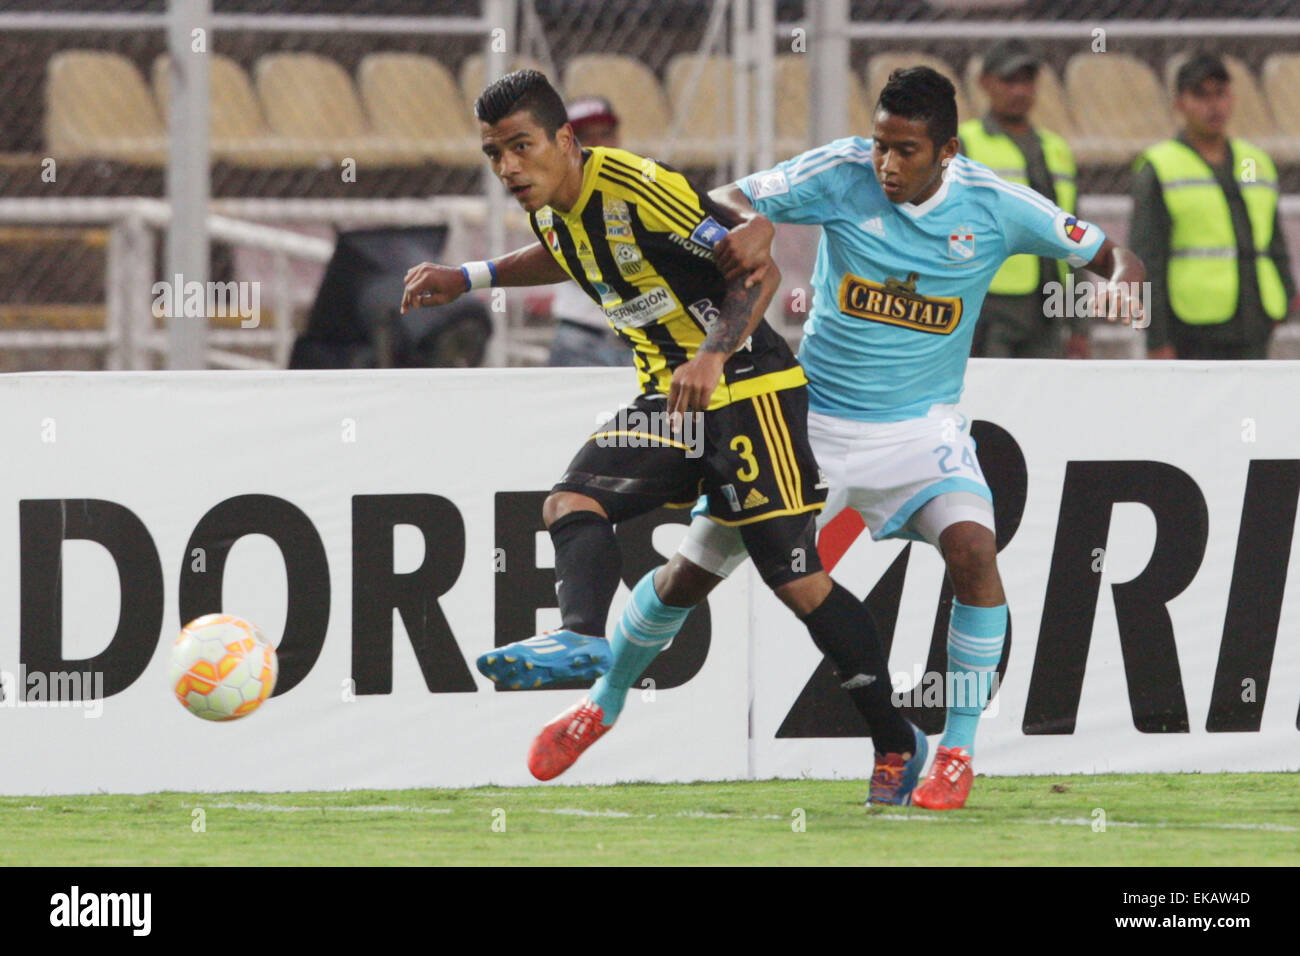 Tachira. 9th Apr, 2015. Deportivo Tachira's Carlos Lujano (L) vies for the ball with Sporting Cristal's - Stock Image